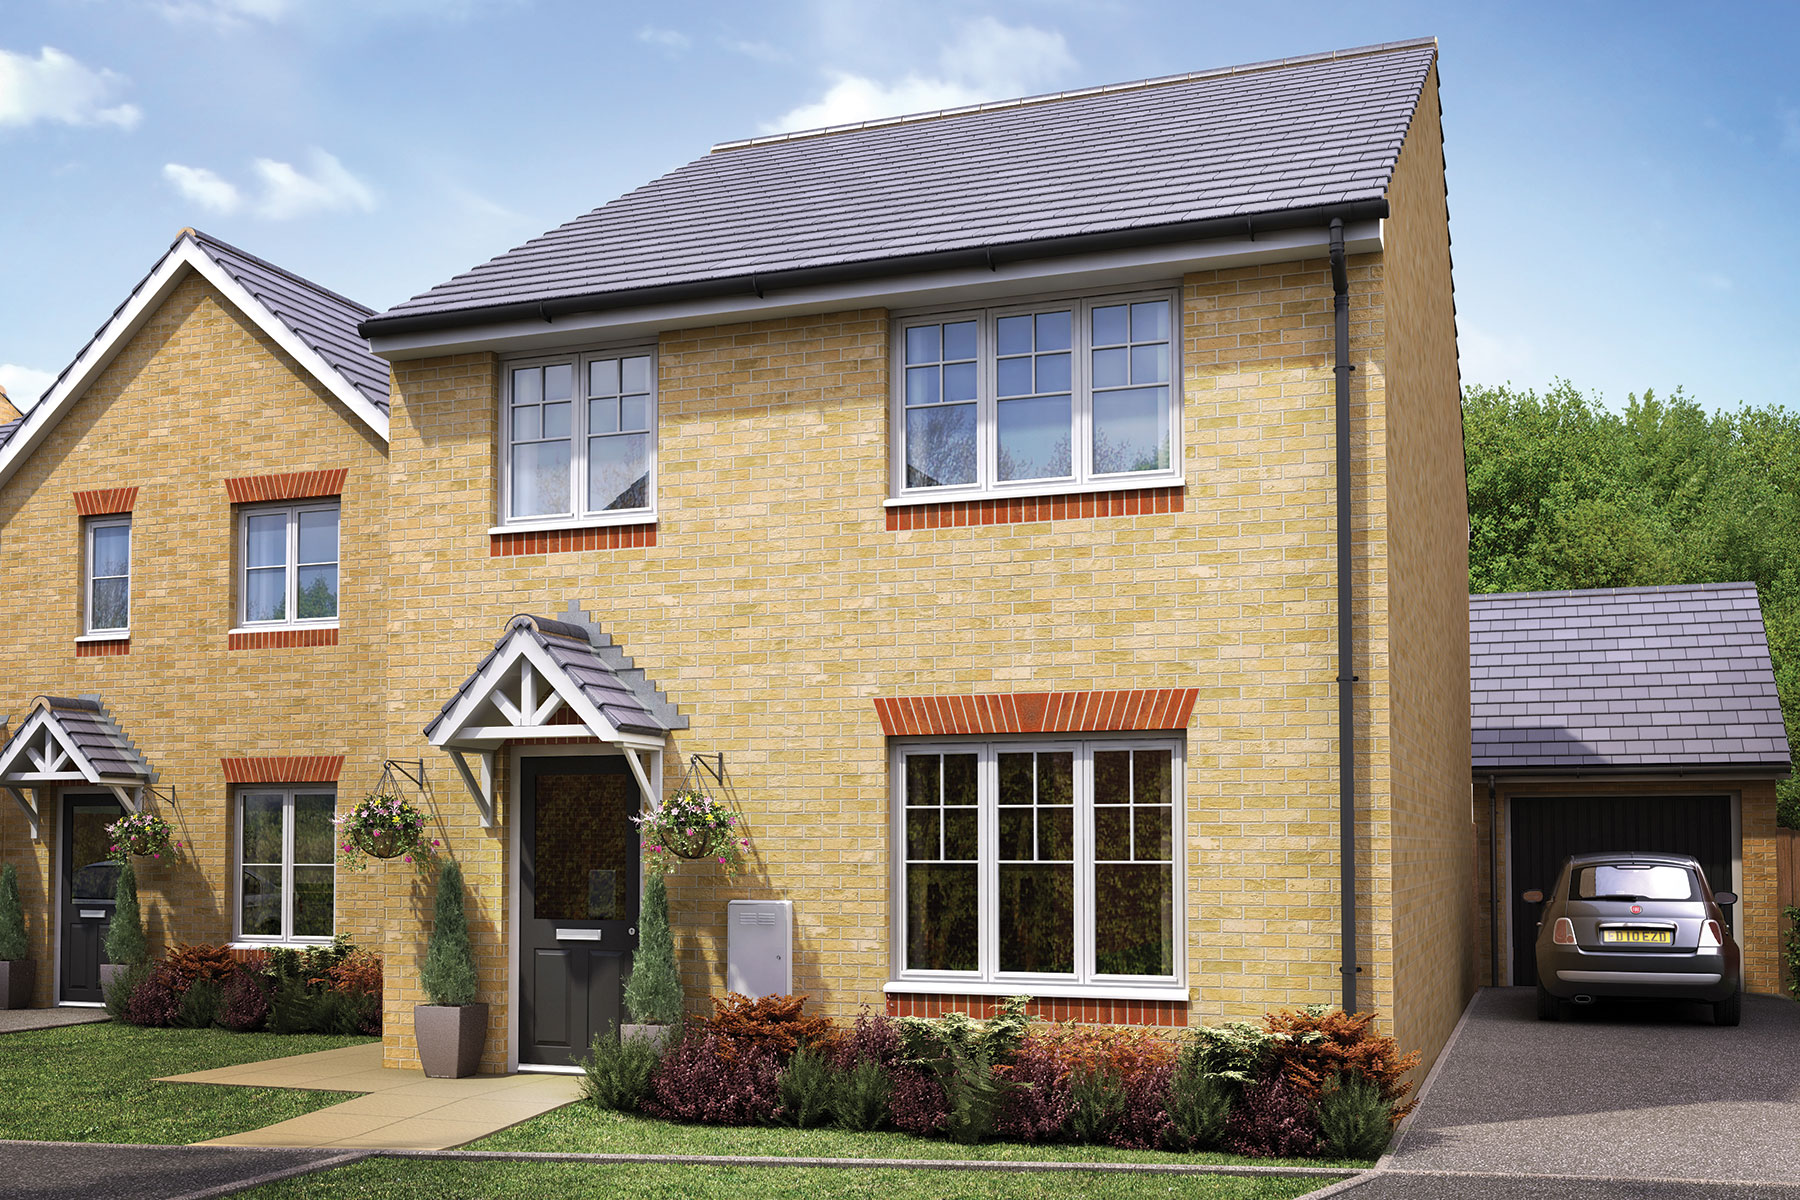 Taylor Wimpey - Exterior - The Midford - 4 bedroom new home